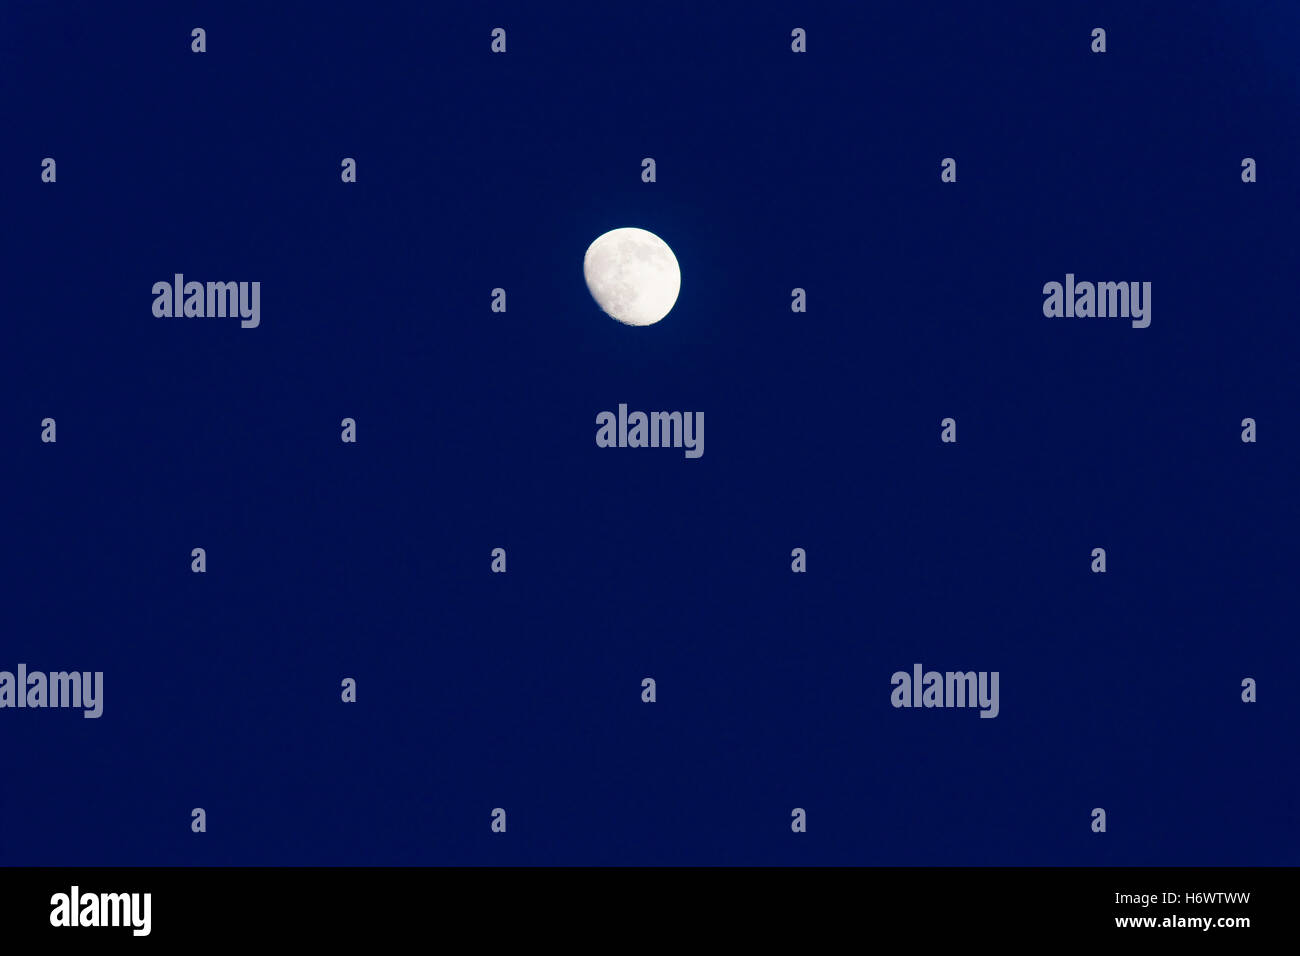 night nighttime moon evening outdoor outside dark backgrounds exterior firmament sky backdrop background outdoors - Stock Image